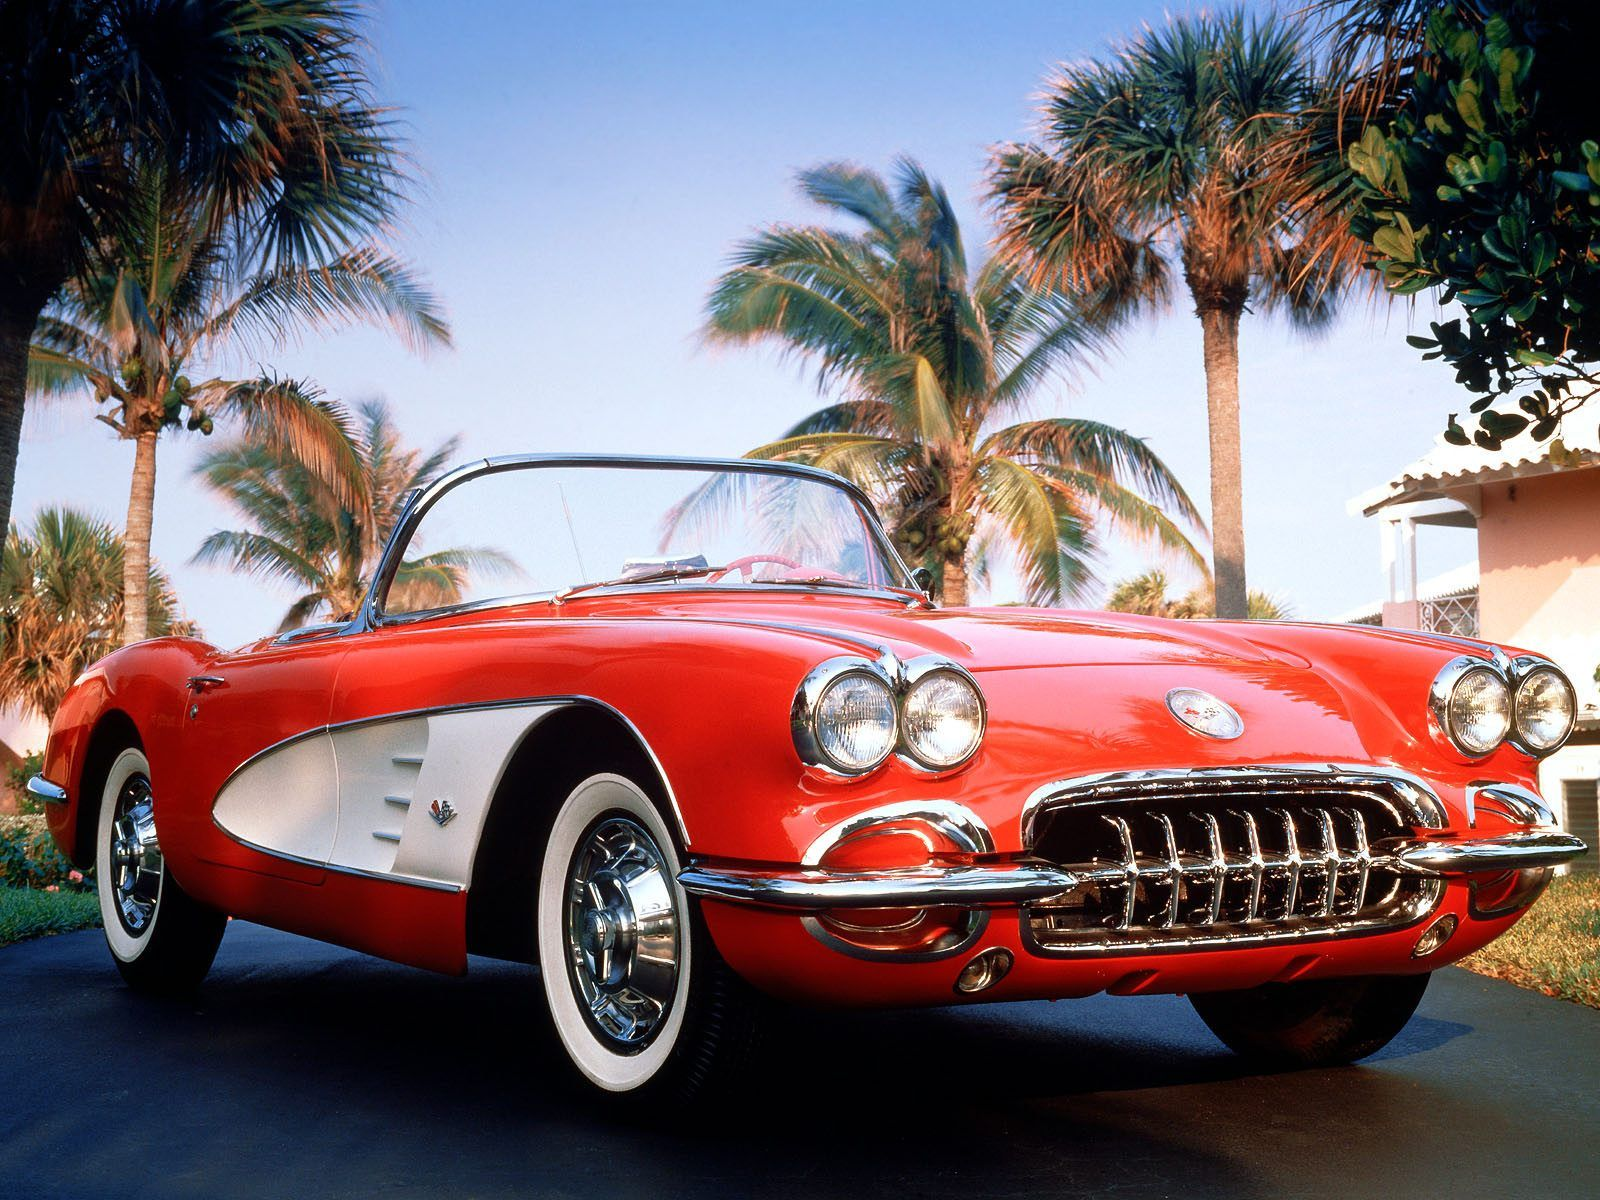 Chevrolet\'s 100 year history - in pictures | Corvette, Chevrolet ...